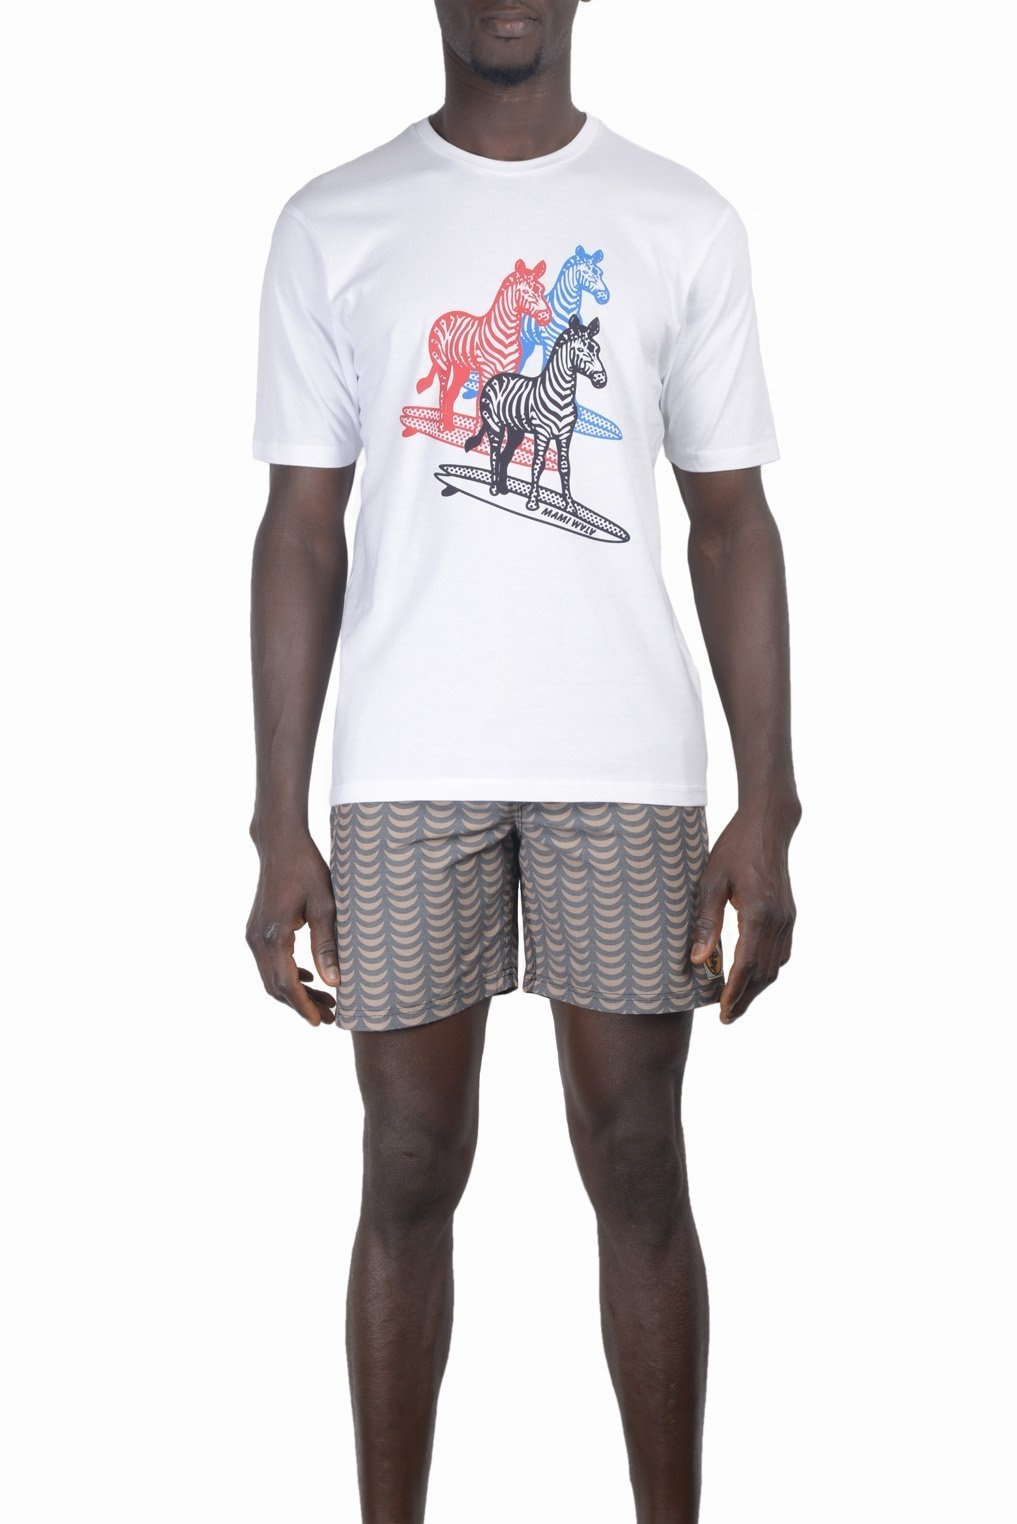 Mami Wata Surf Mami Wata Surf Men's Three Surfing Zebras Tee White